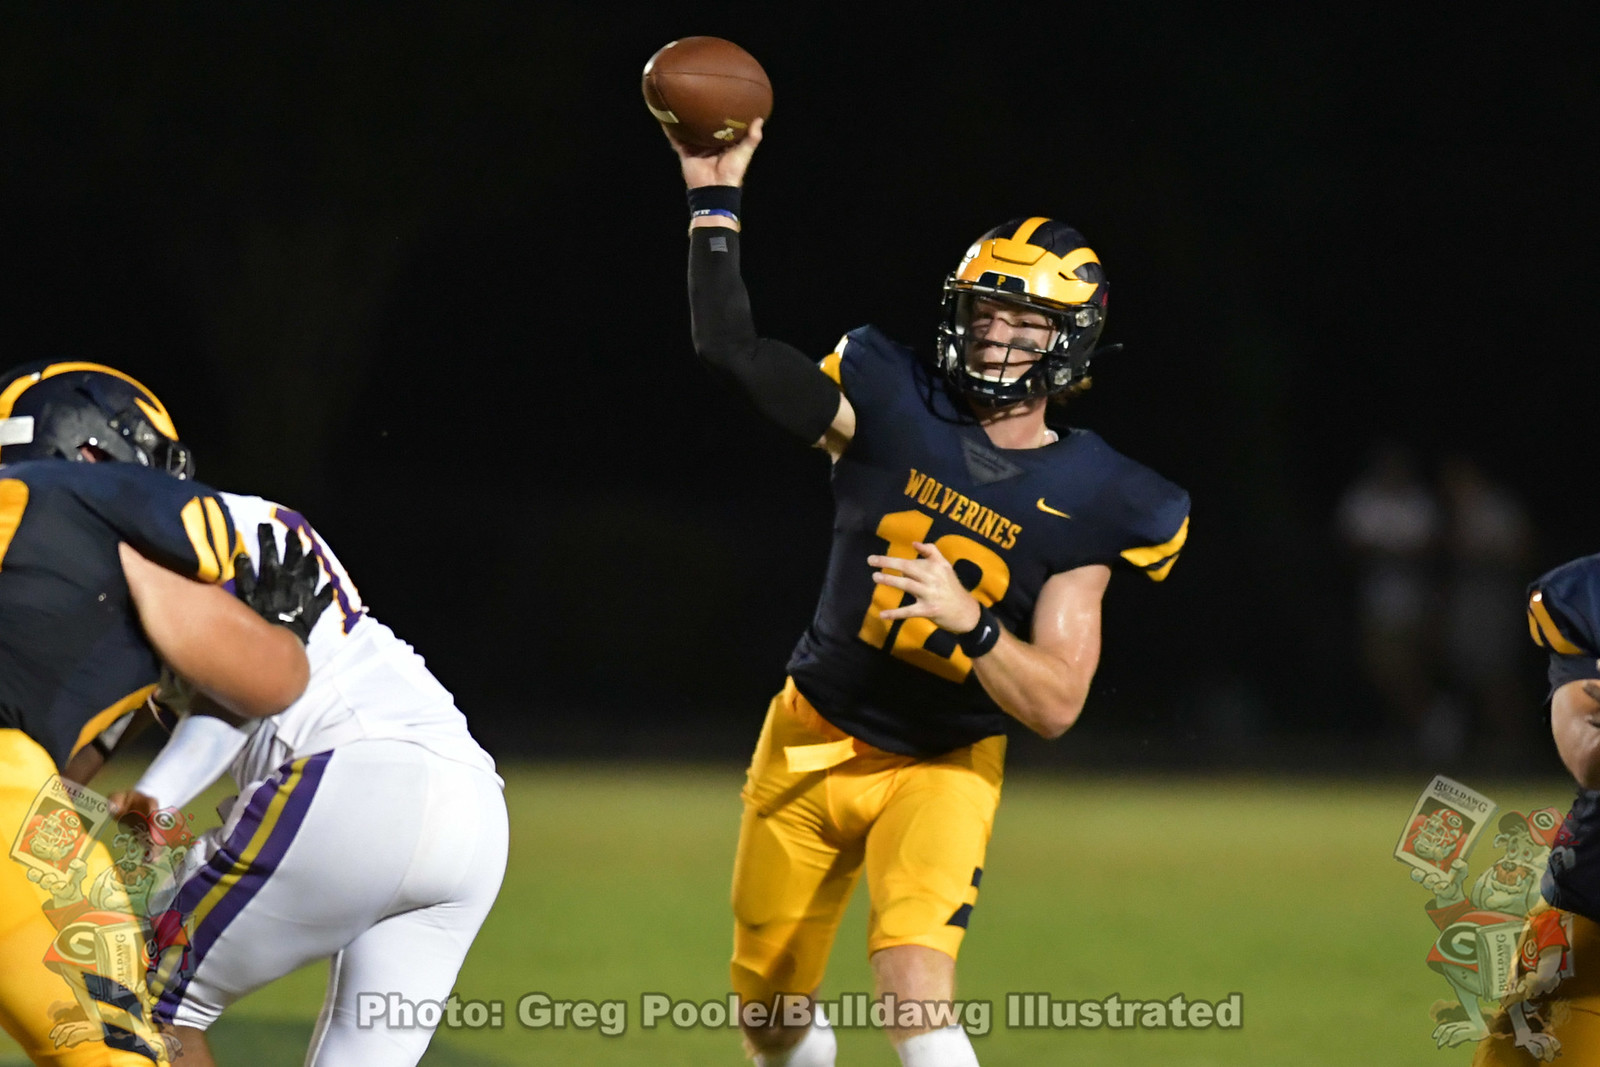 UGA quarterback commit, Brock Vandagriff, during his game between Prince Avenue Christian School and Calvary Christian on September 04, 2020.